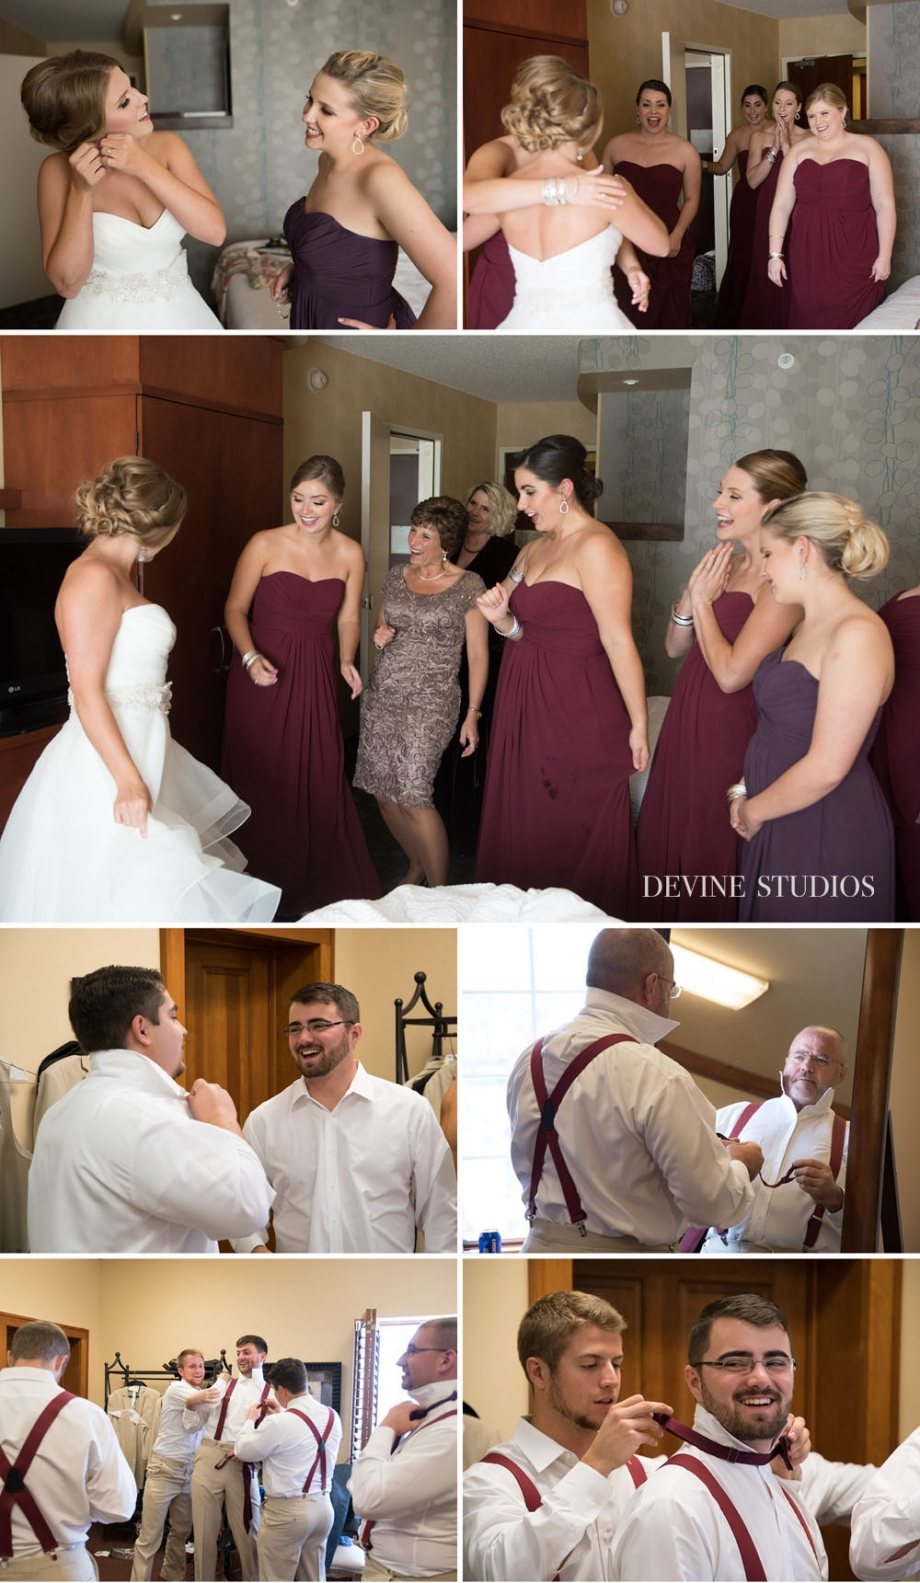 wedding-photography-kansas-city-peeper-ranch-devine-studios-3